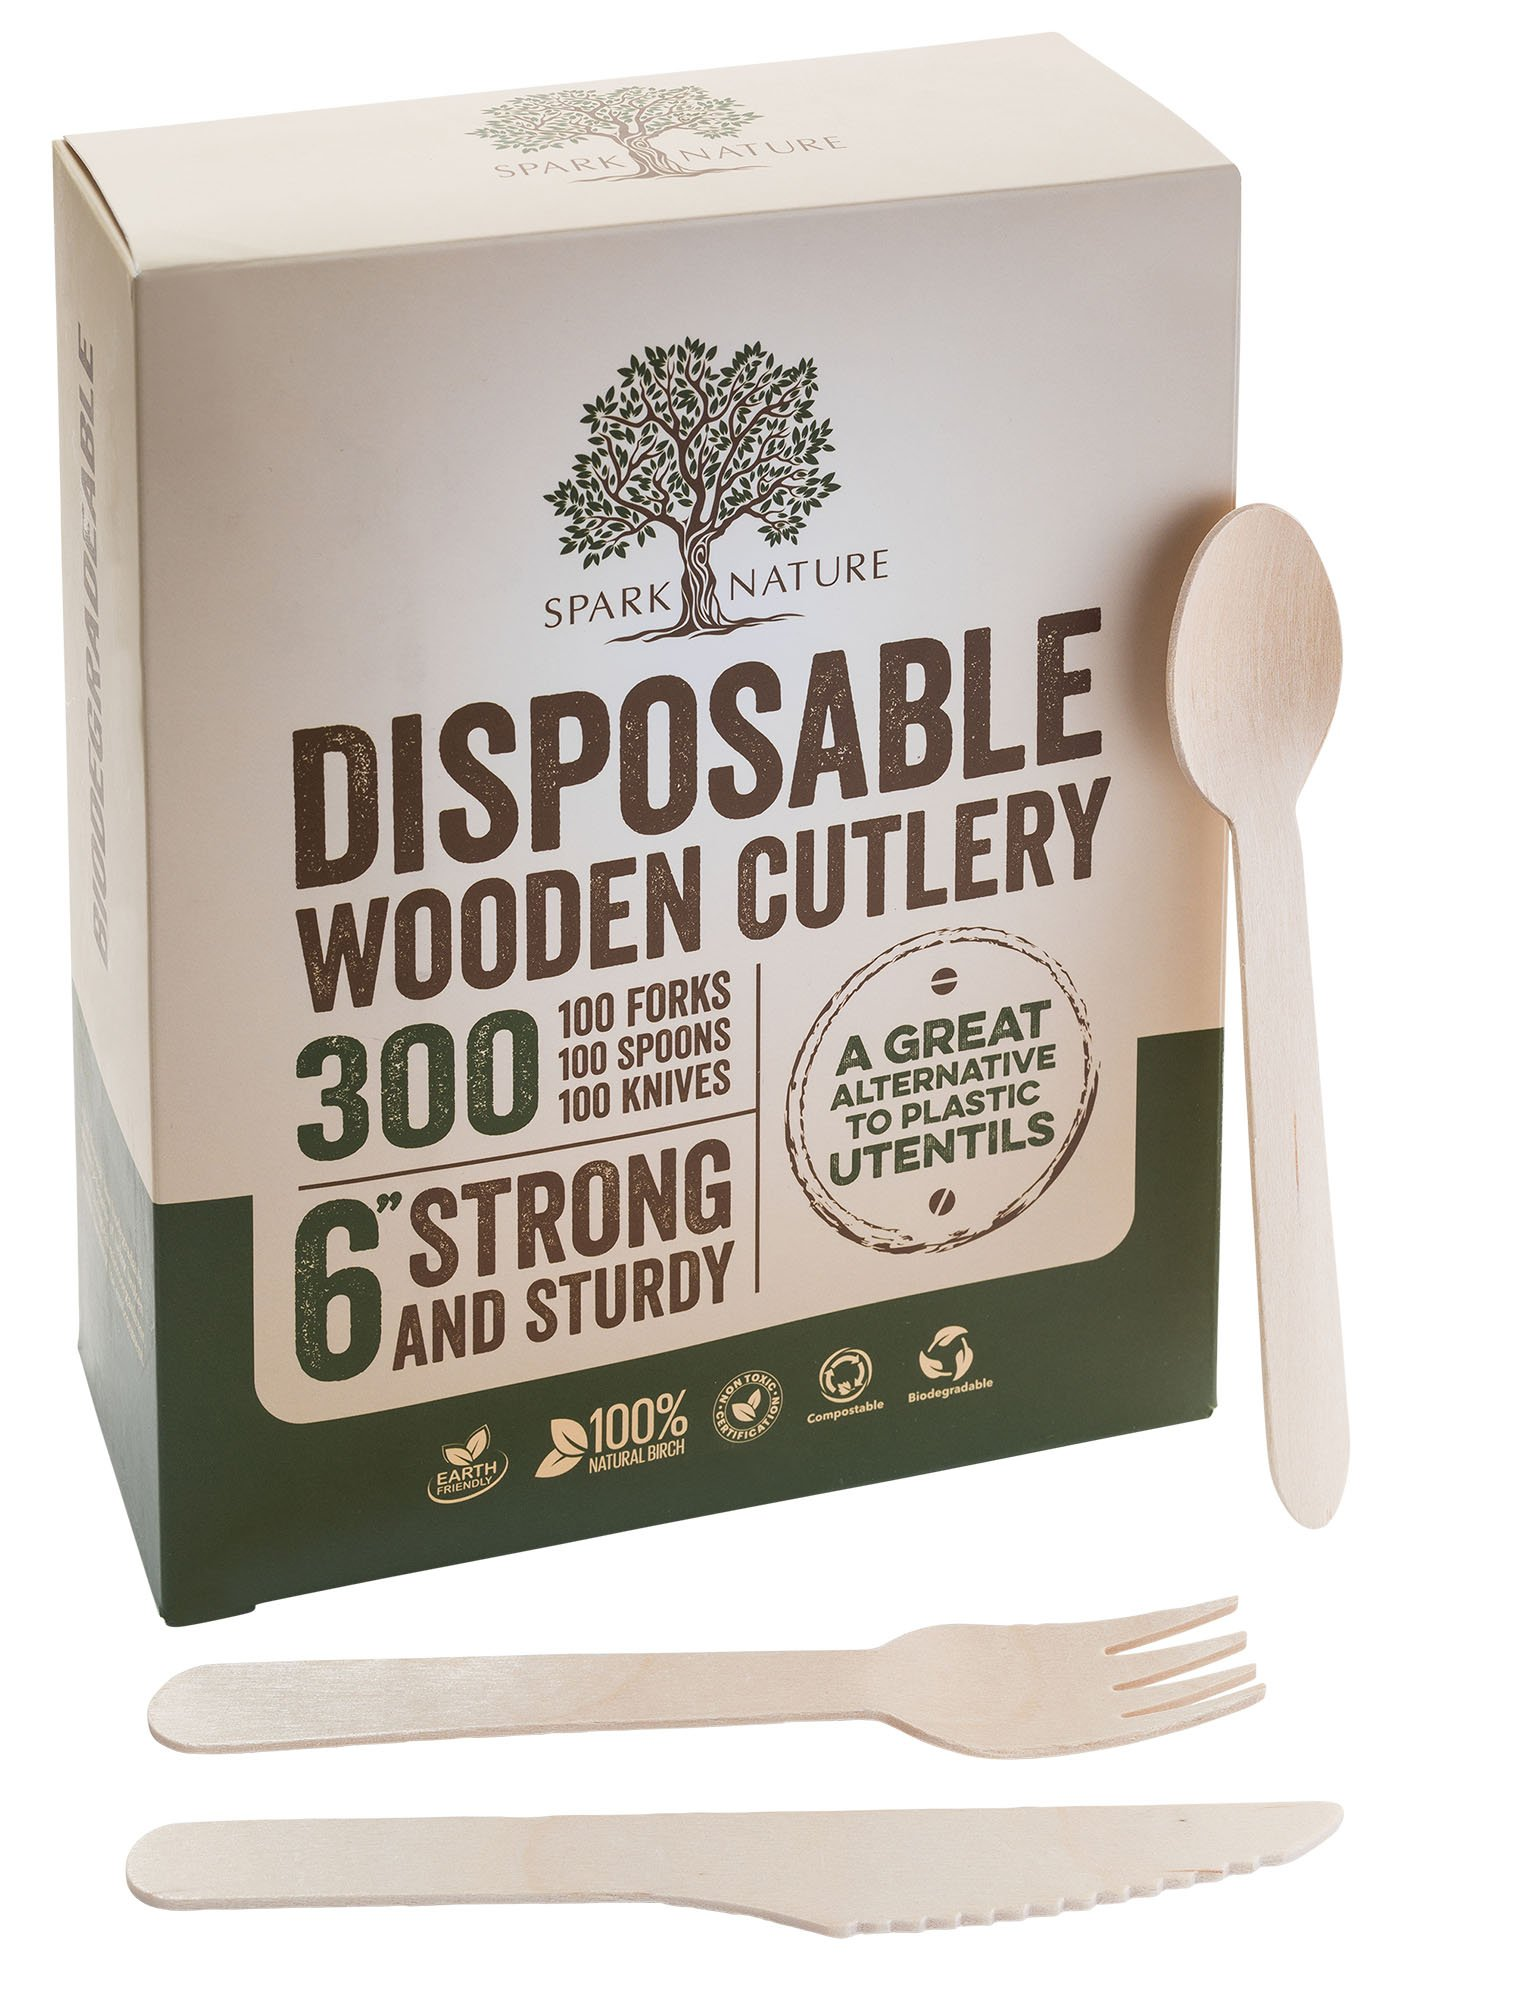 Wooden Silverware and Utensils | Biodegradable, Eco-Friendly, & Disposable Wood Cutlery Set | Wooden Cutlery | All Natural Wooden Forks, Spoons, and Knives | Sturdy Wooden Cutlery Set 300 pc, 6""